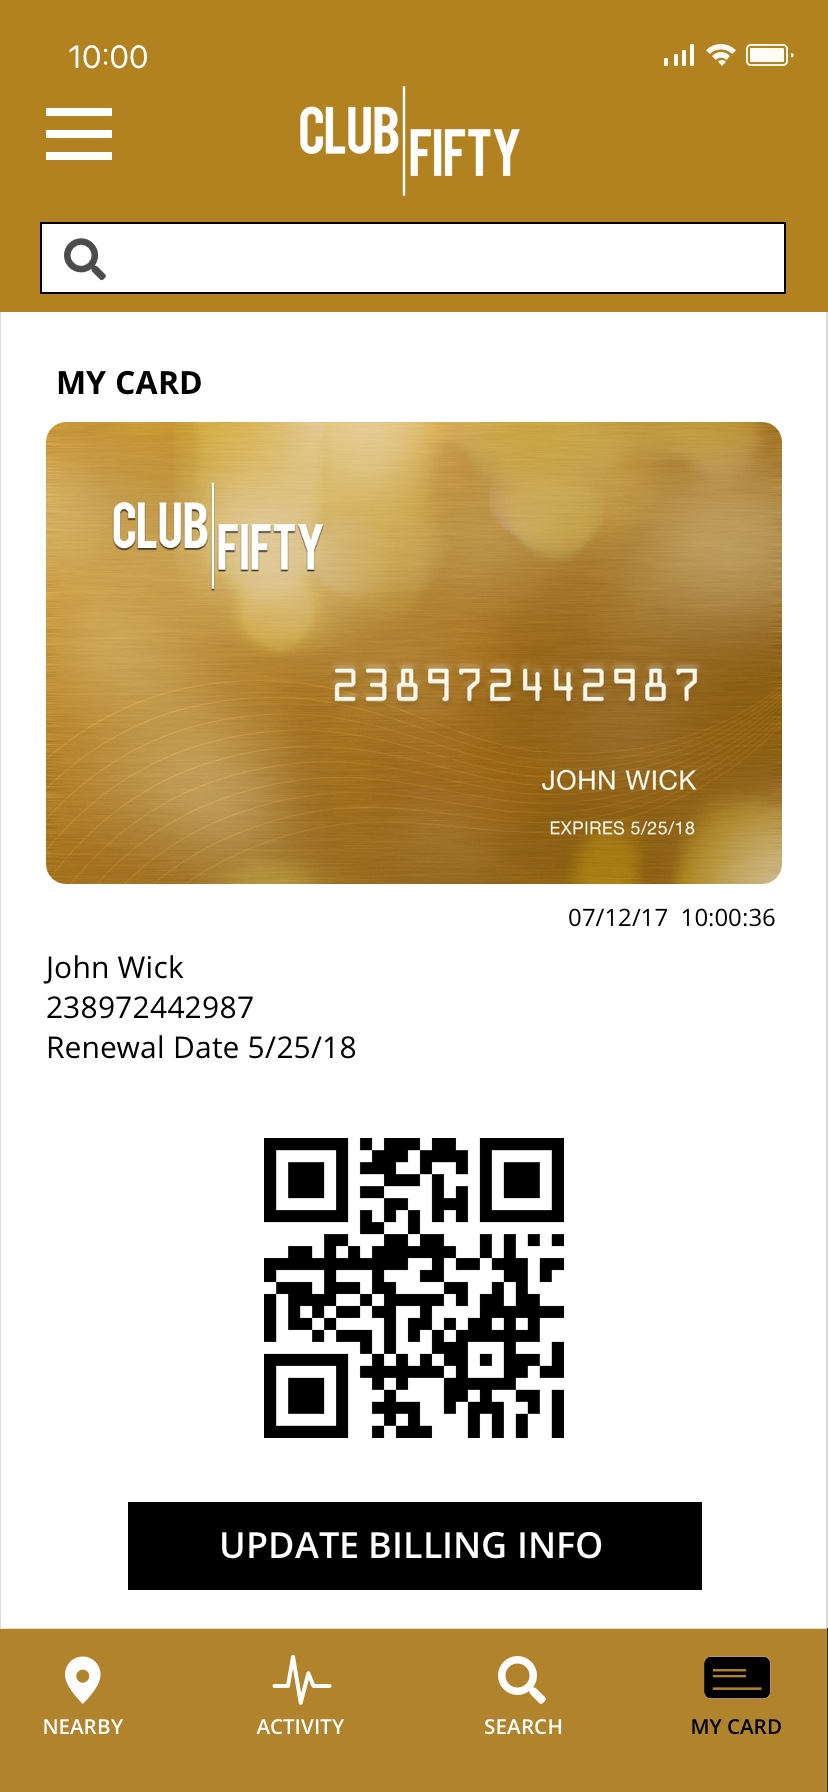 Club Fifty scannable QR code card